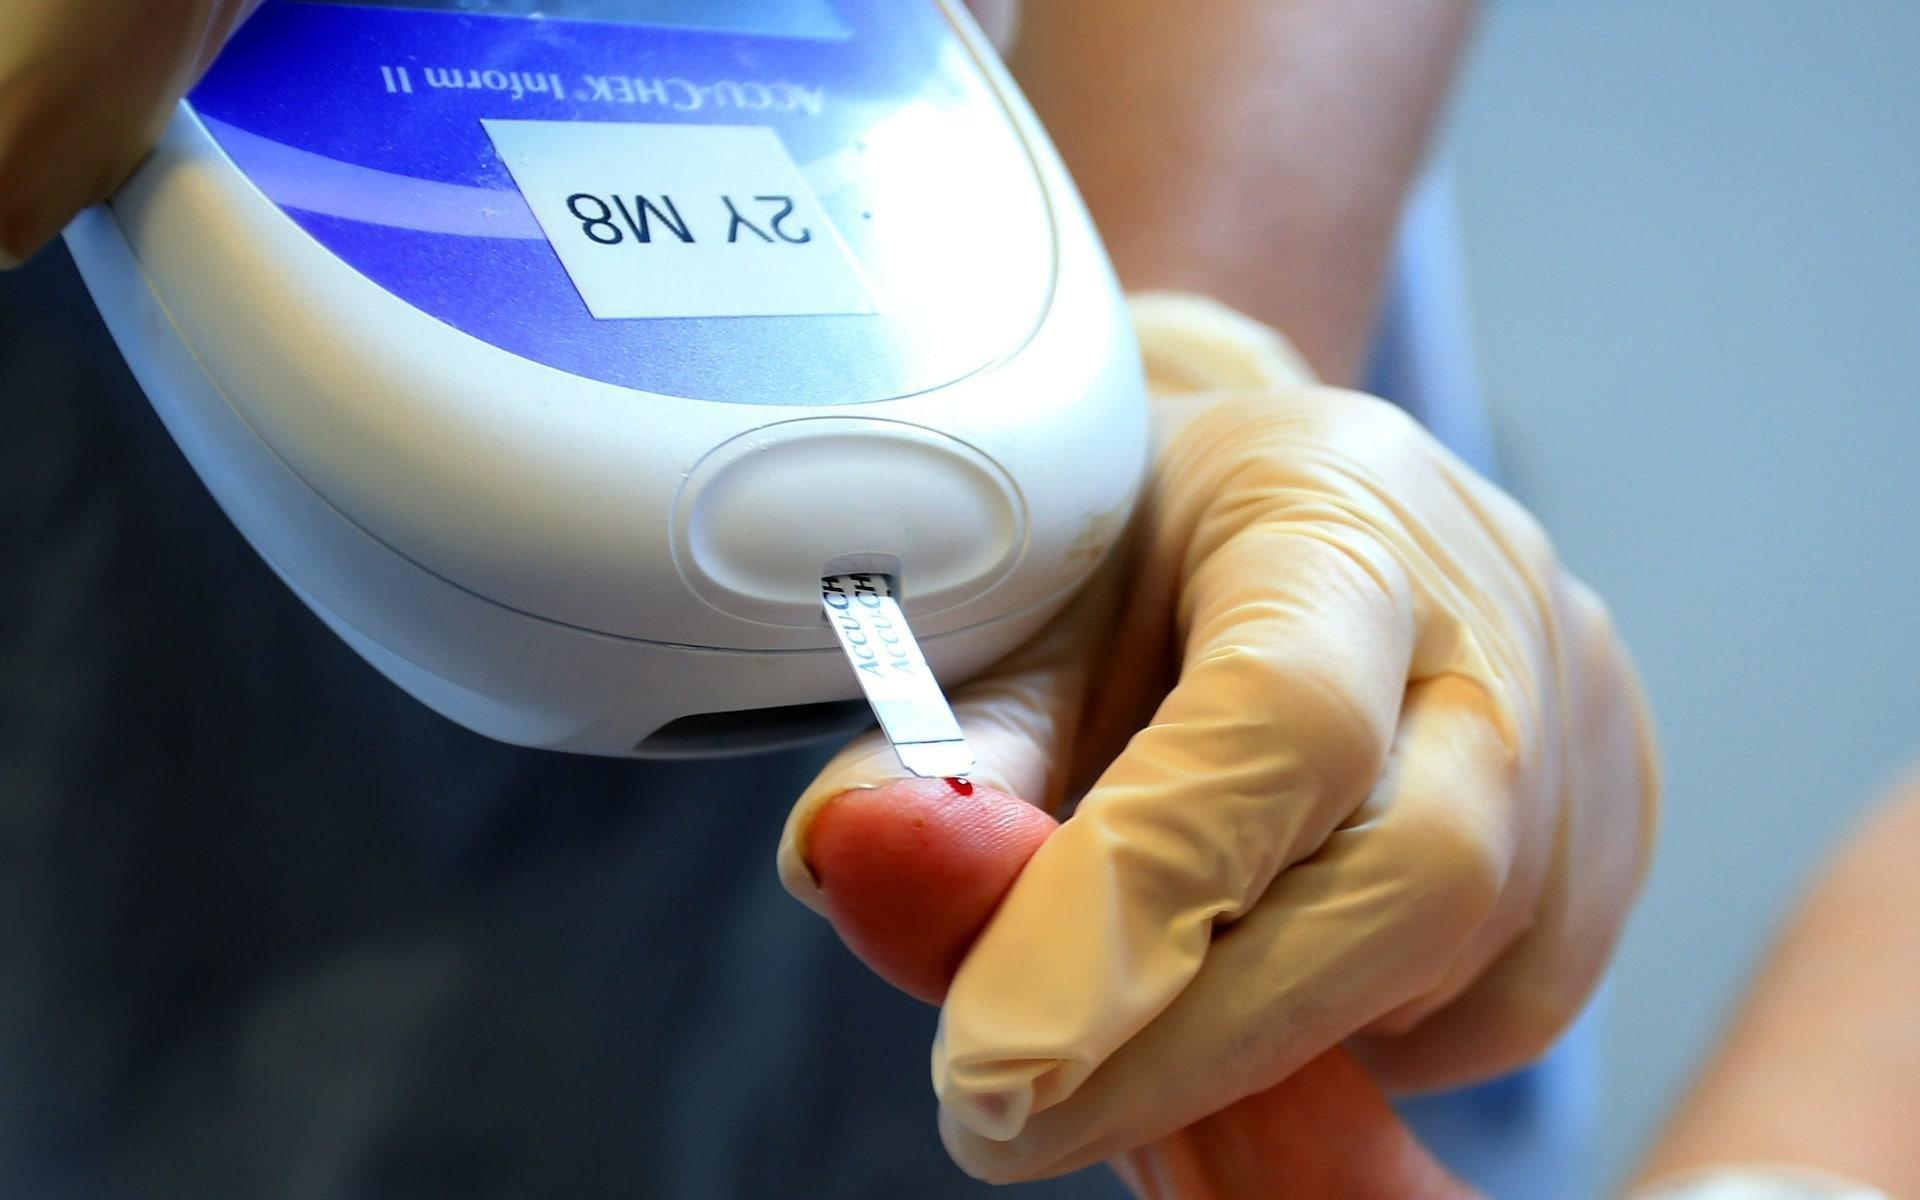 British doctors trial simple gut operation that 'cures or controls' diabetes